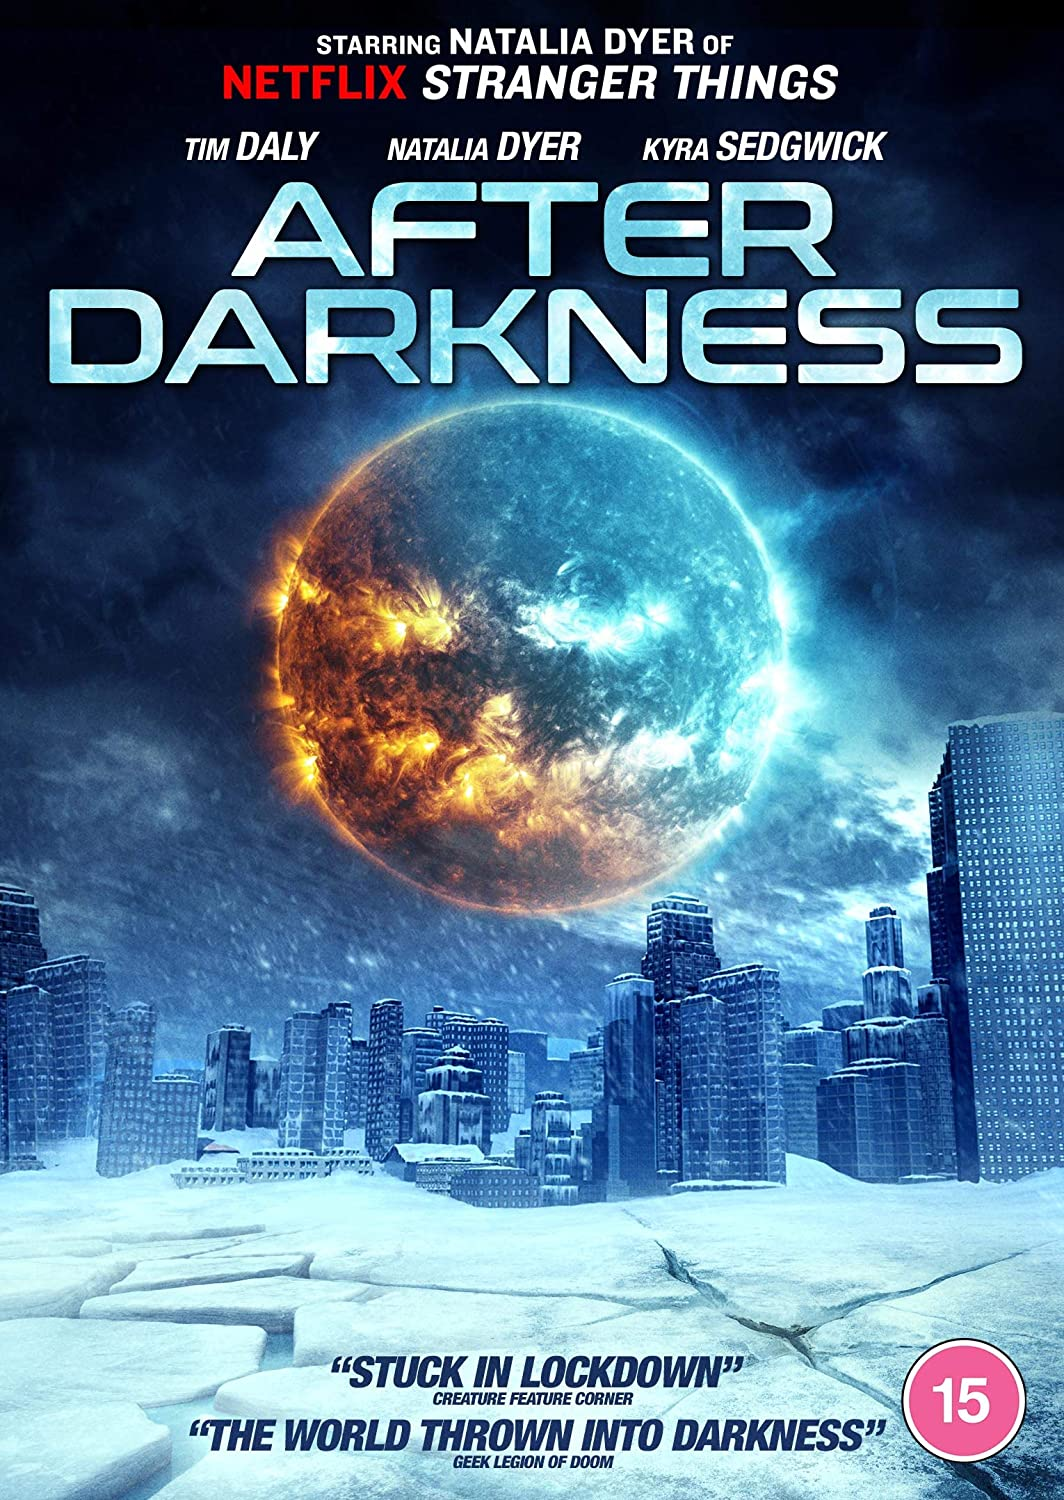 Film Review: AFTER DARKNESS (2019)